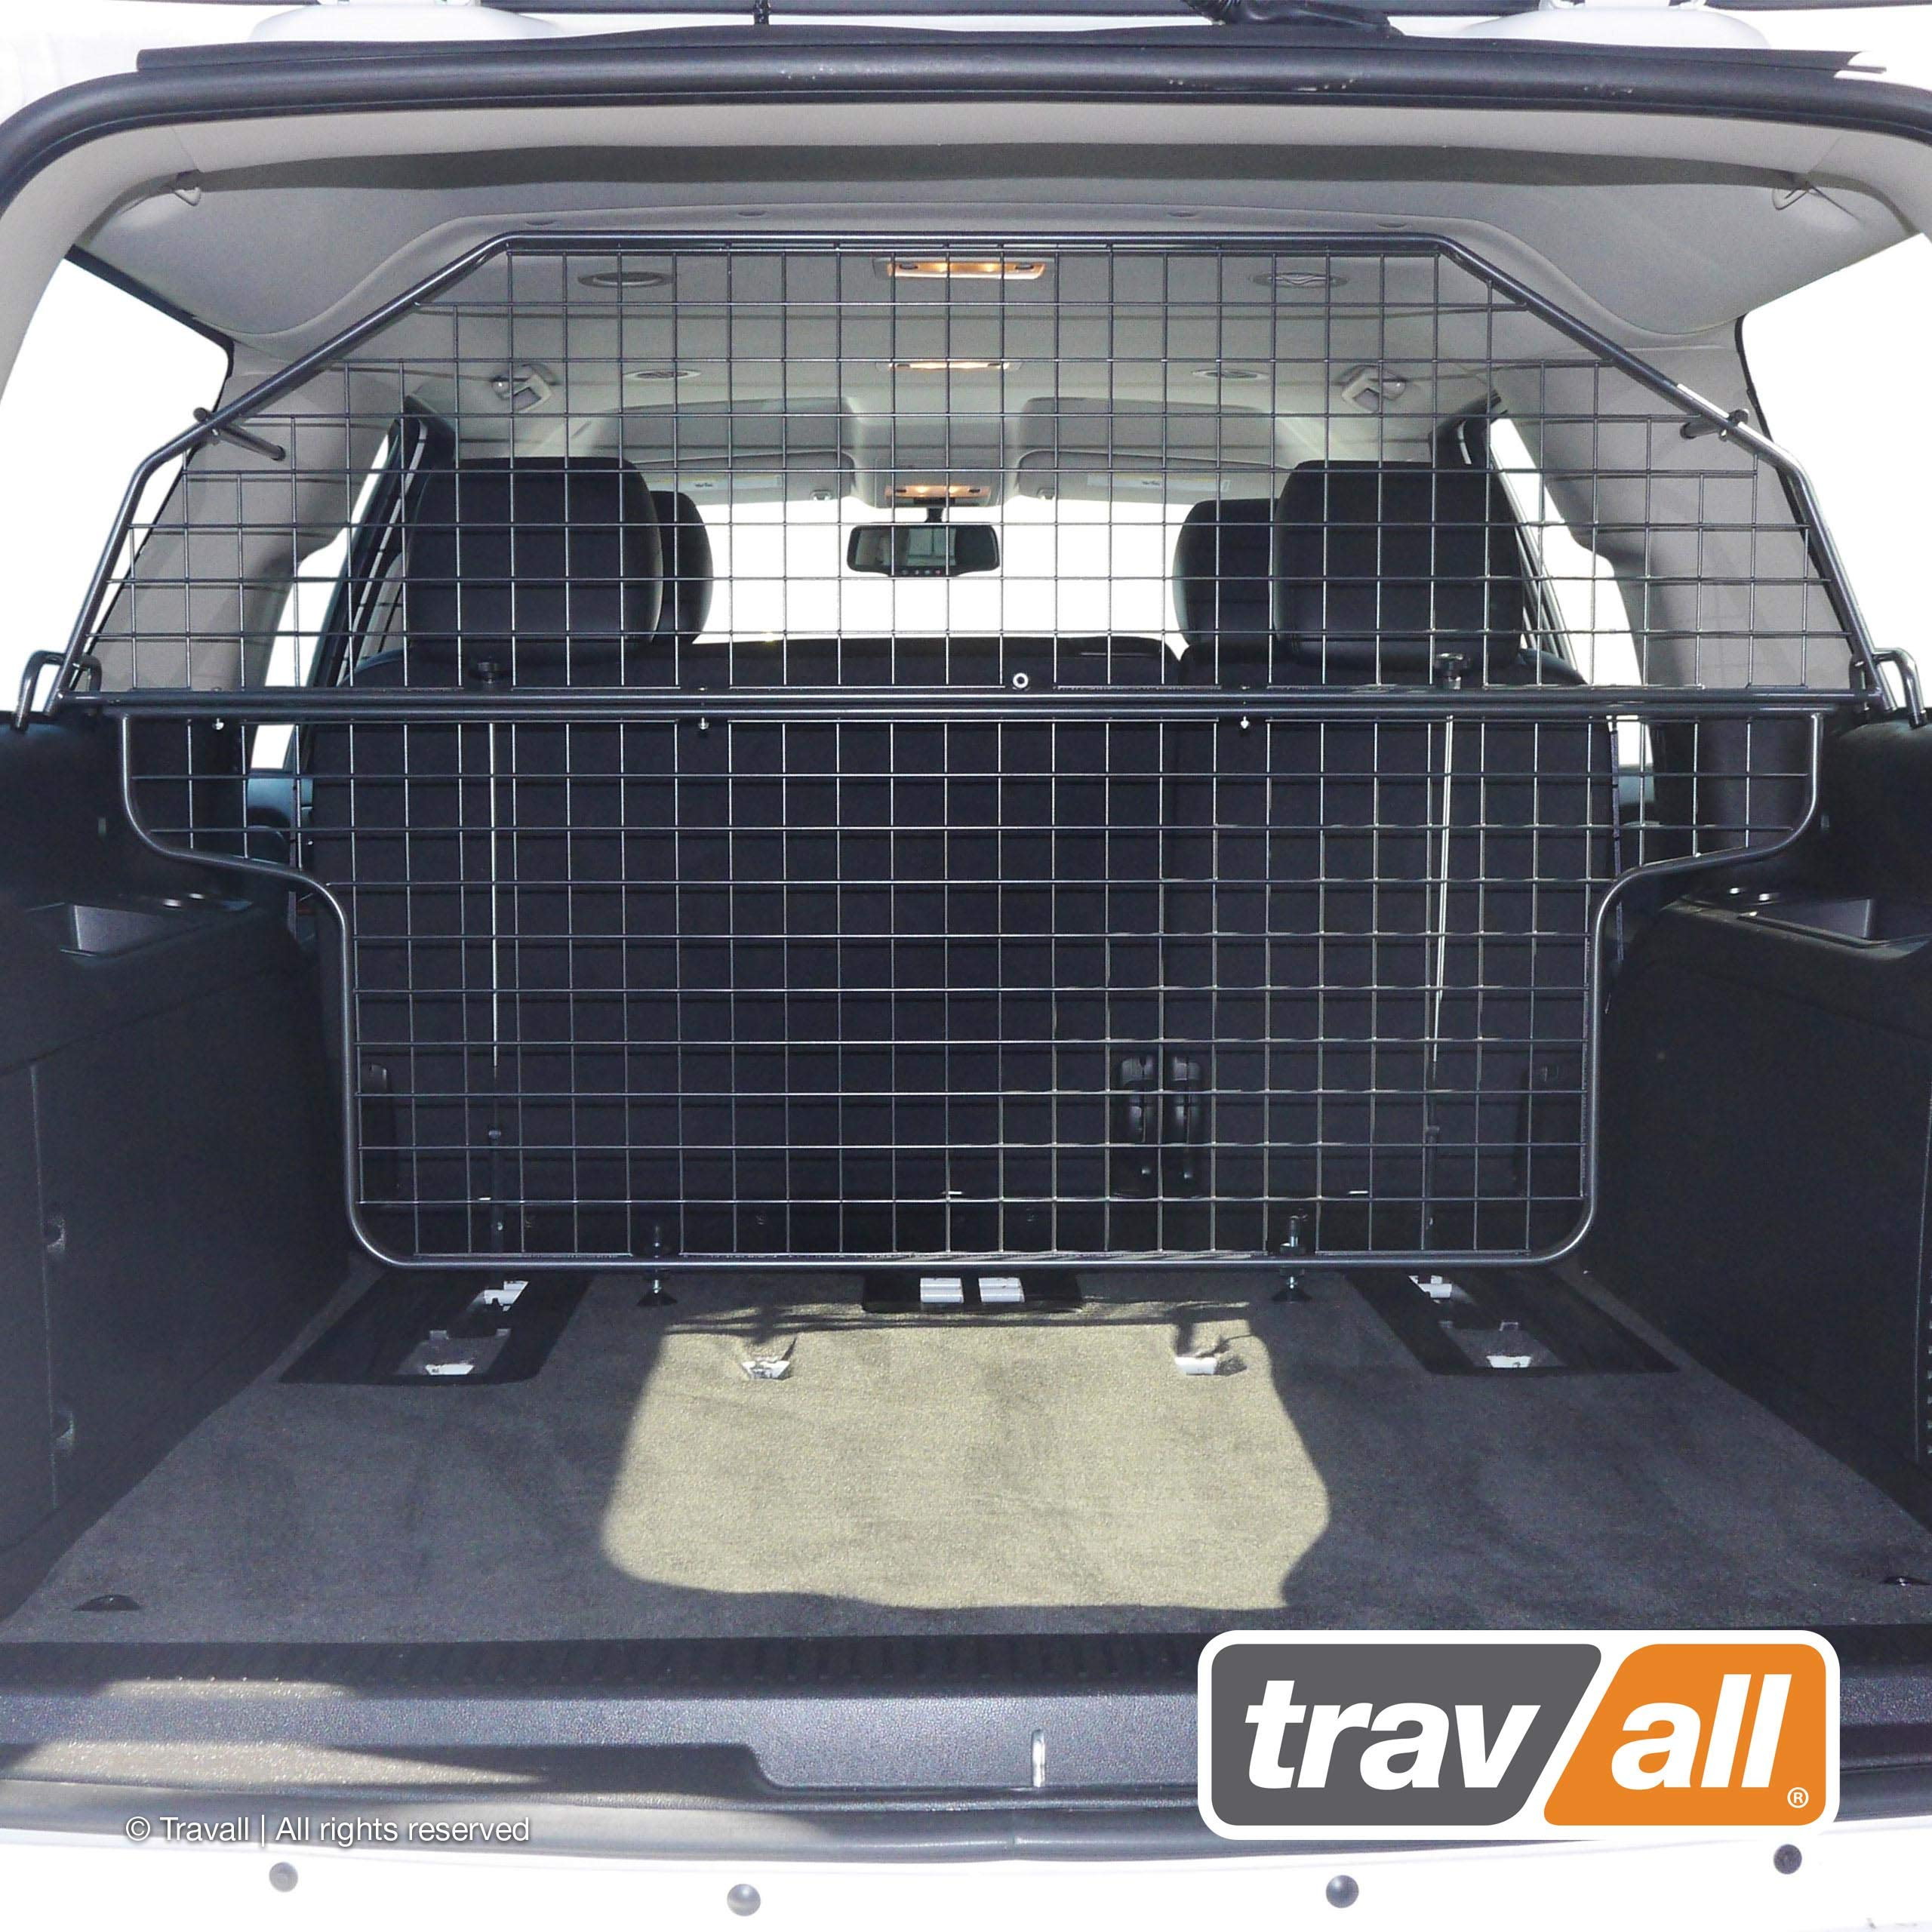 Travall Guard Compatible with Chevrolet Suburban and GMC Yukon XL (2006-2014) TDG1433 - Rattle-Free Steel Pet Barrier by Travall